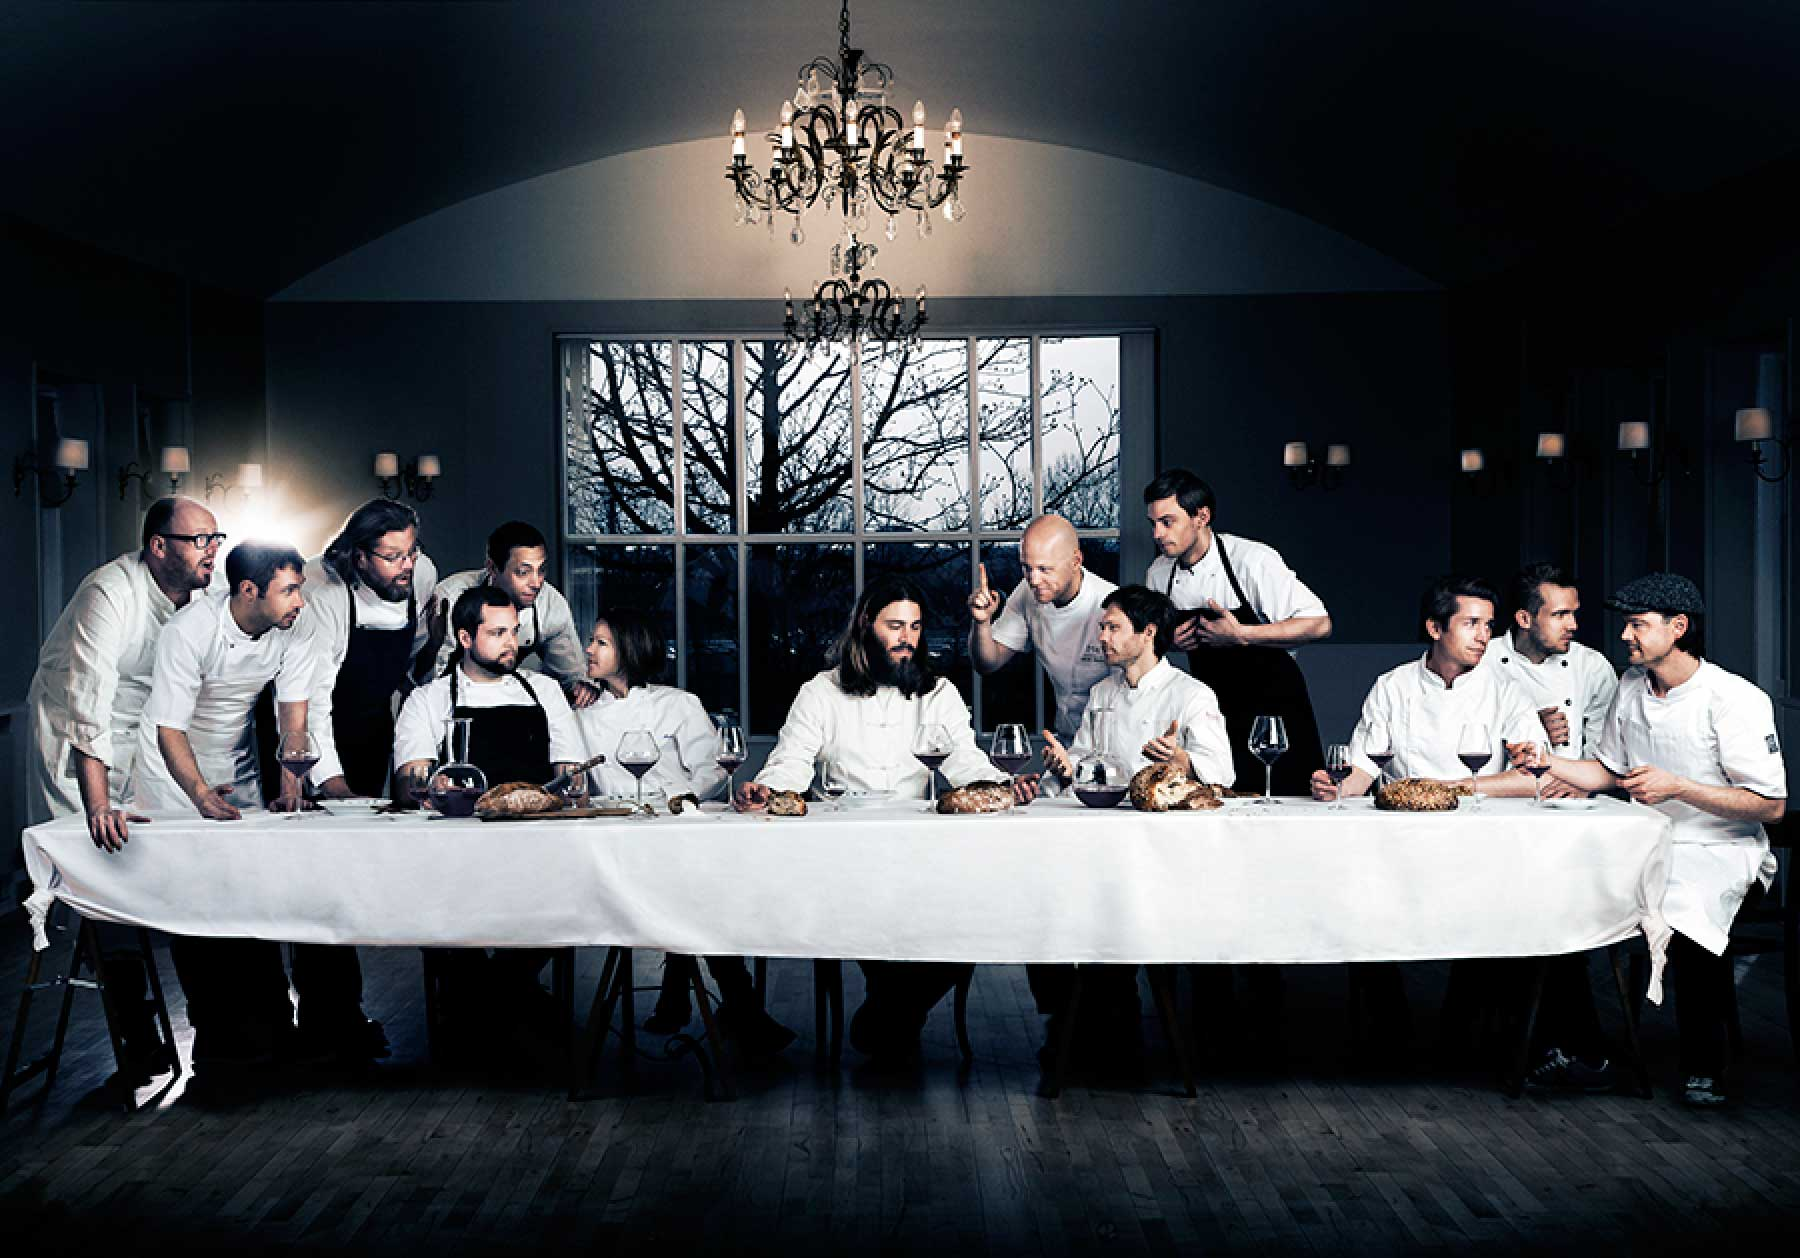 Marie Louise Munkegaard; Photographer; The Last Supper, The Last Supper with chefs, Den sidste nadver, Chefportraits, Leonardi Da Vinci The Last Supper, Madfotografi; Foodphotography; Scandinavian foodphotography; Nordic; Copenhagen; Denmark